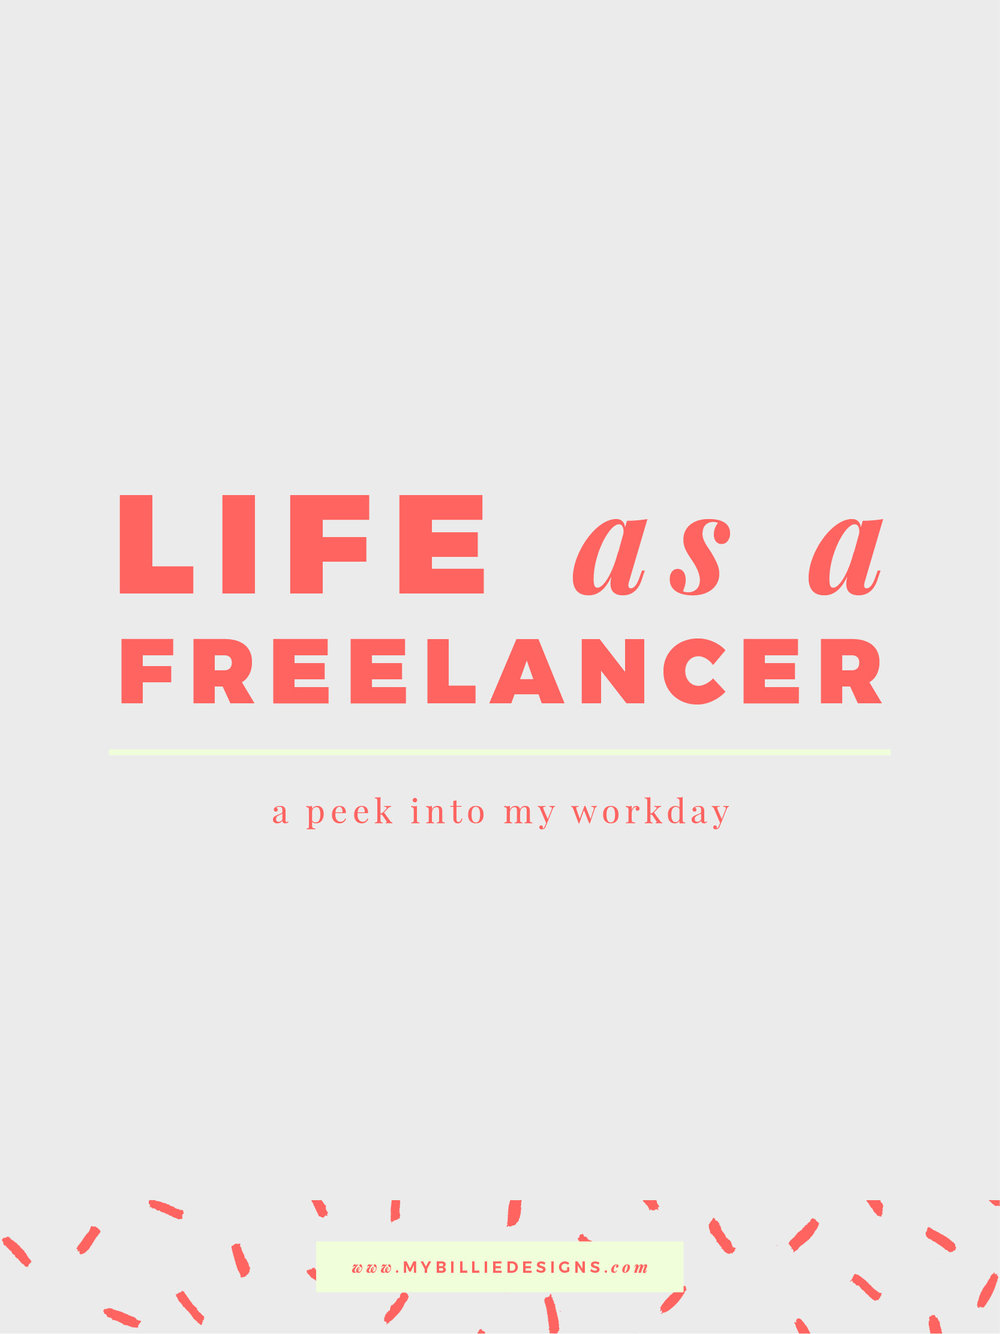 Freelance life workday. Click through to read →